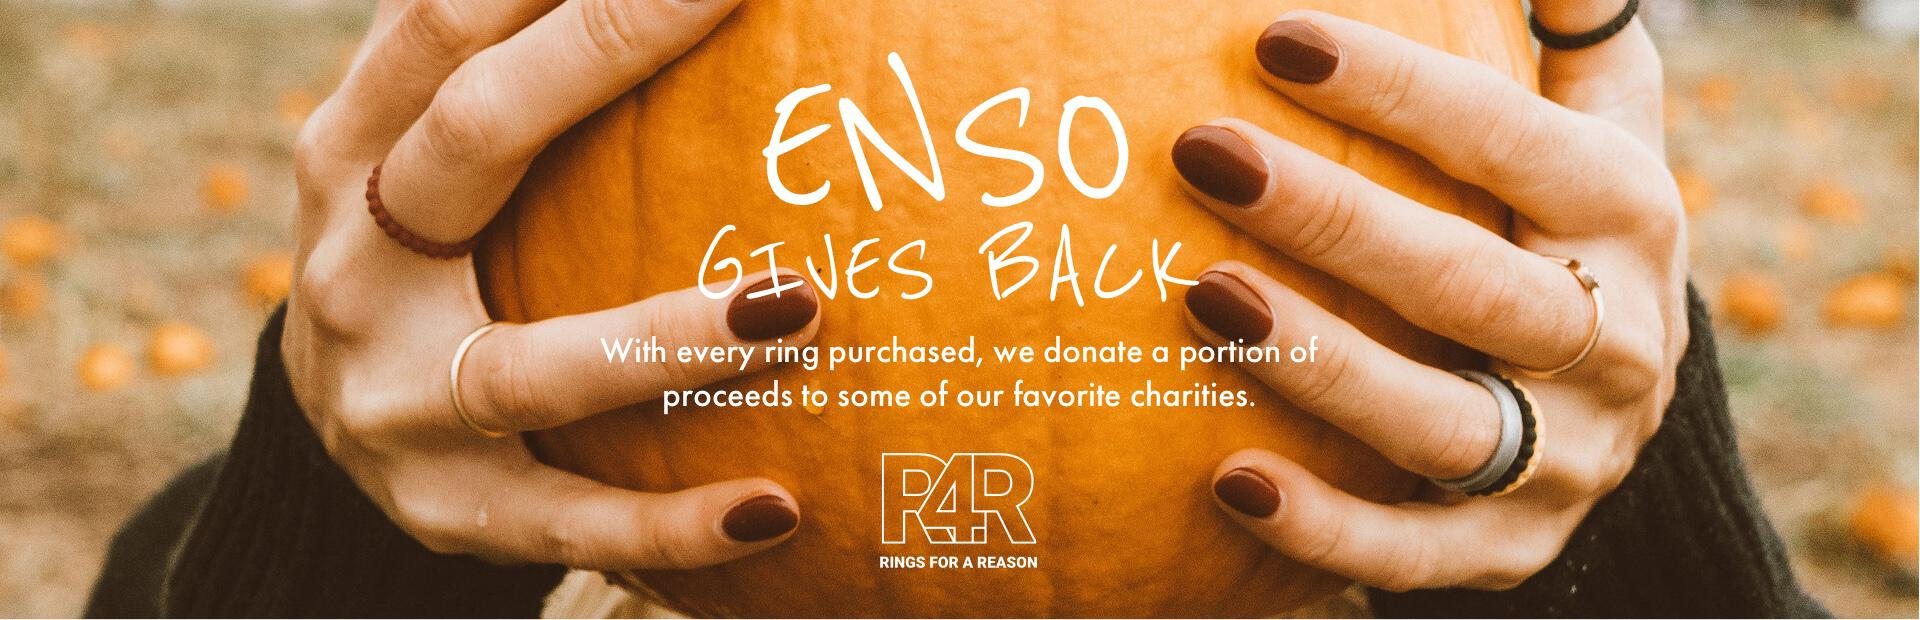 Inked Rings | Halloween | Enso Rings Gives Gack - Rings for a Reason